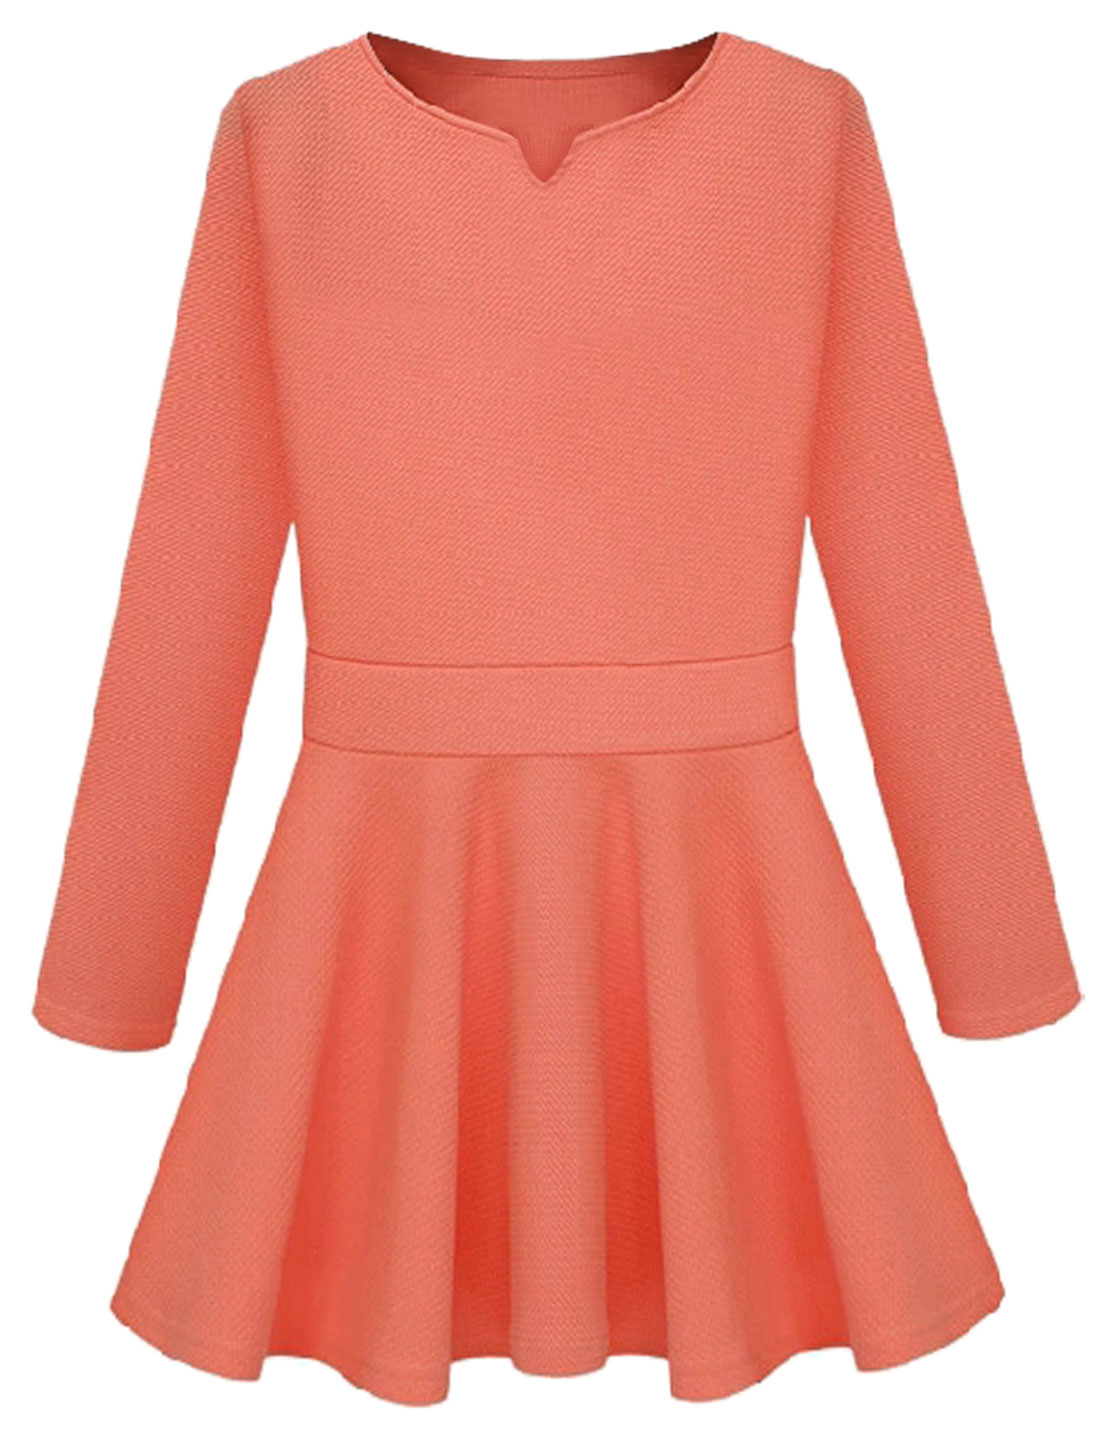 Women Split Neck Long Sleeves Slipover A-line Dresses Salmon S